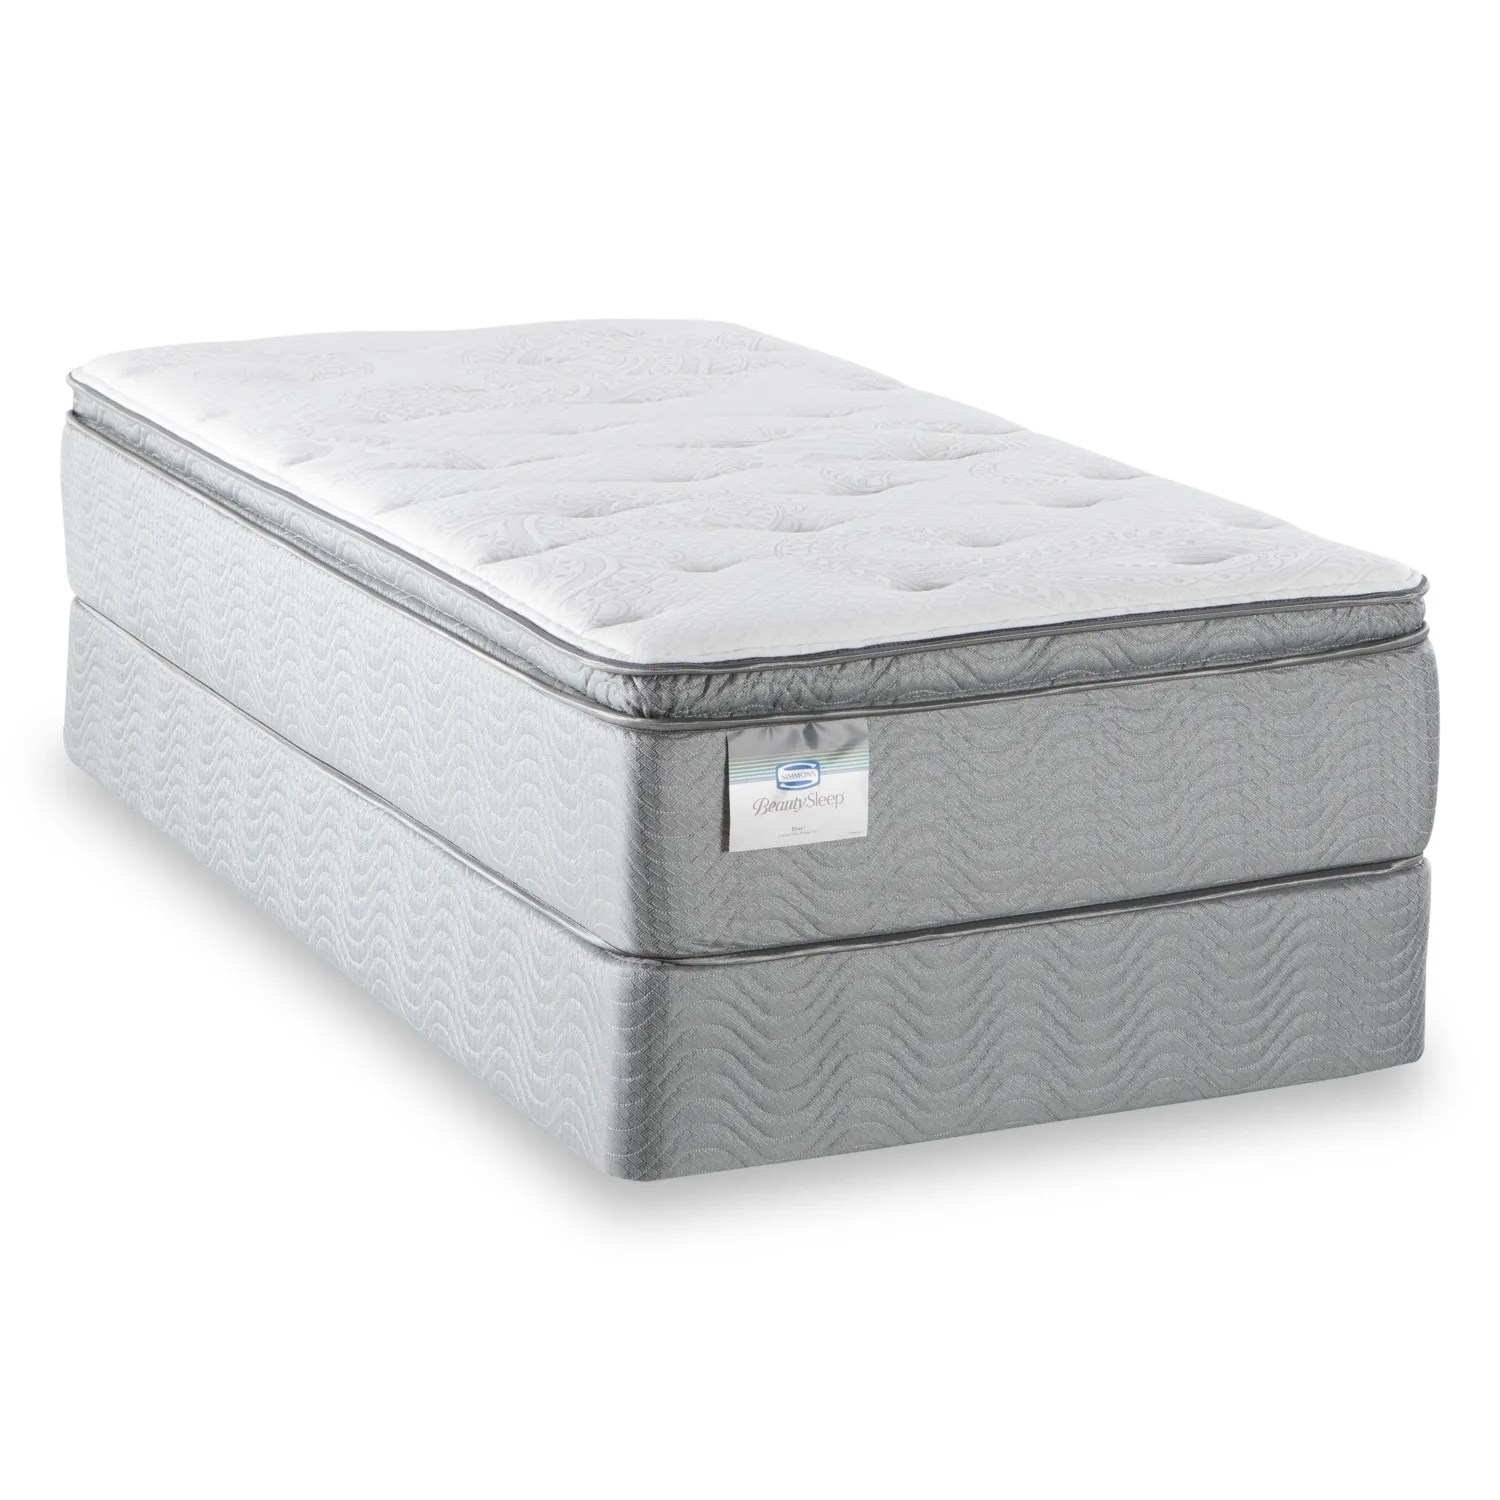 Pillow Top King Mattress Beautysleep Elias Lux Firm Pillow Top King Mattress